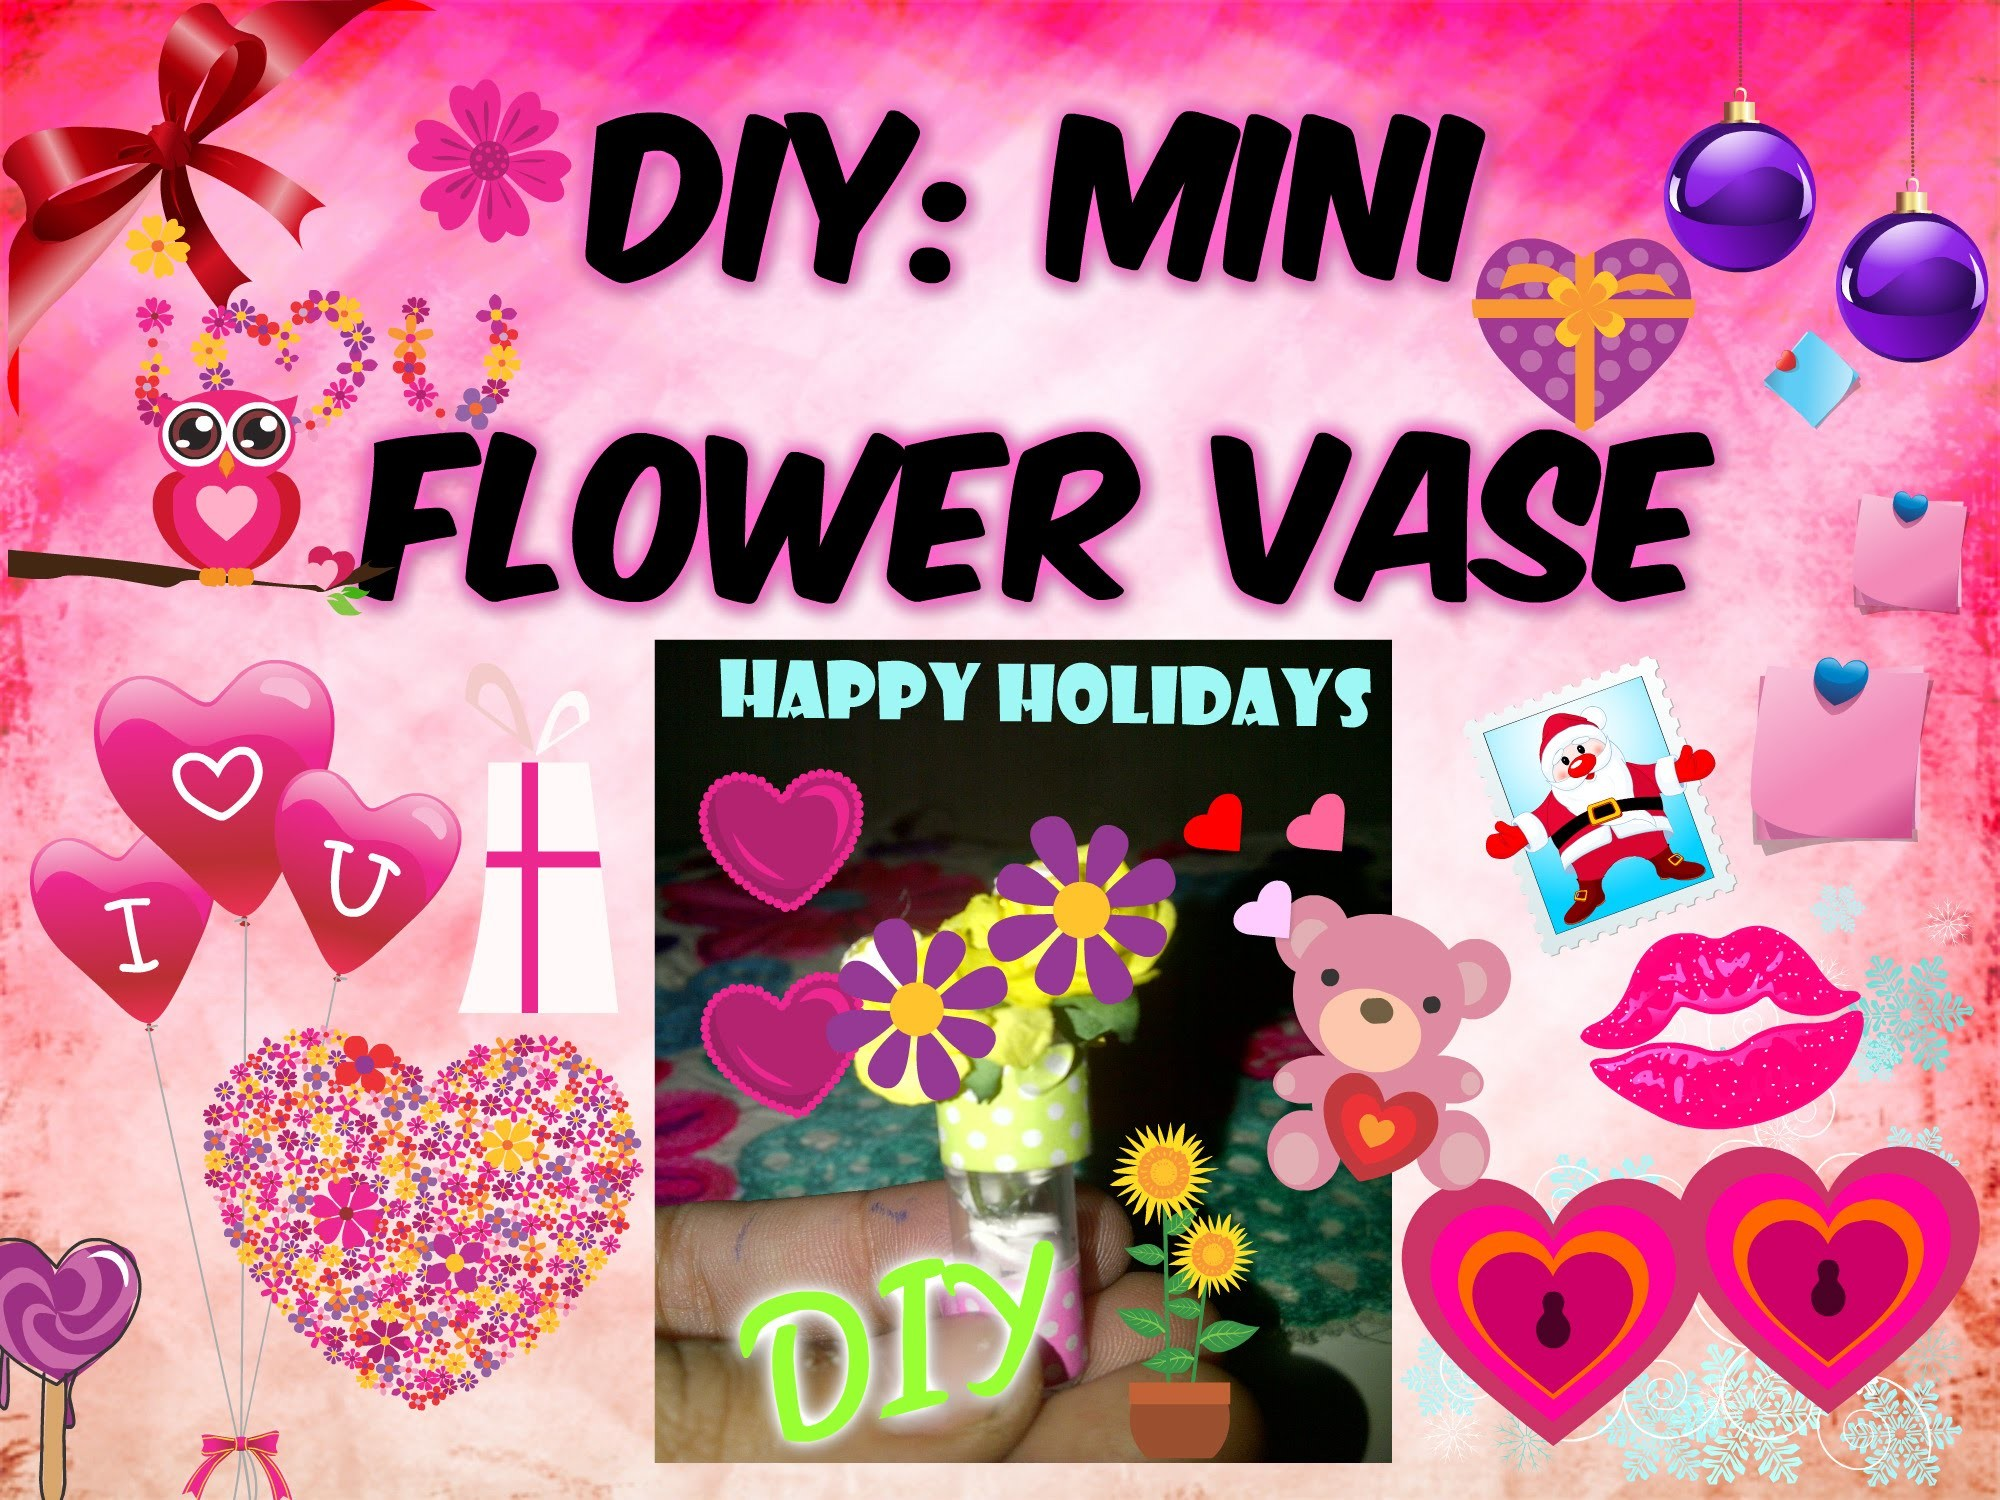 DIY: MINI FLOWER VASE GIFT FOR FREINDS